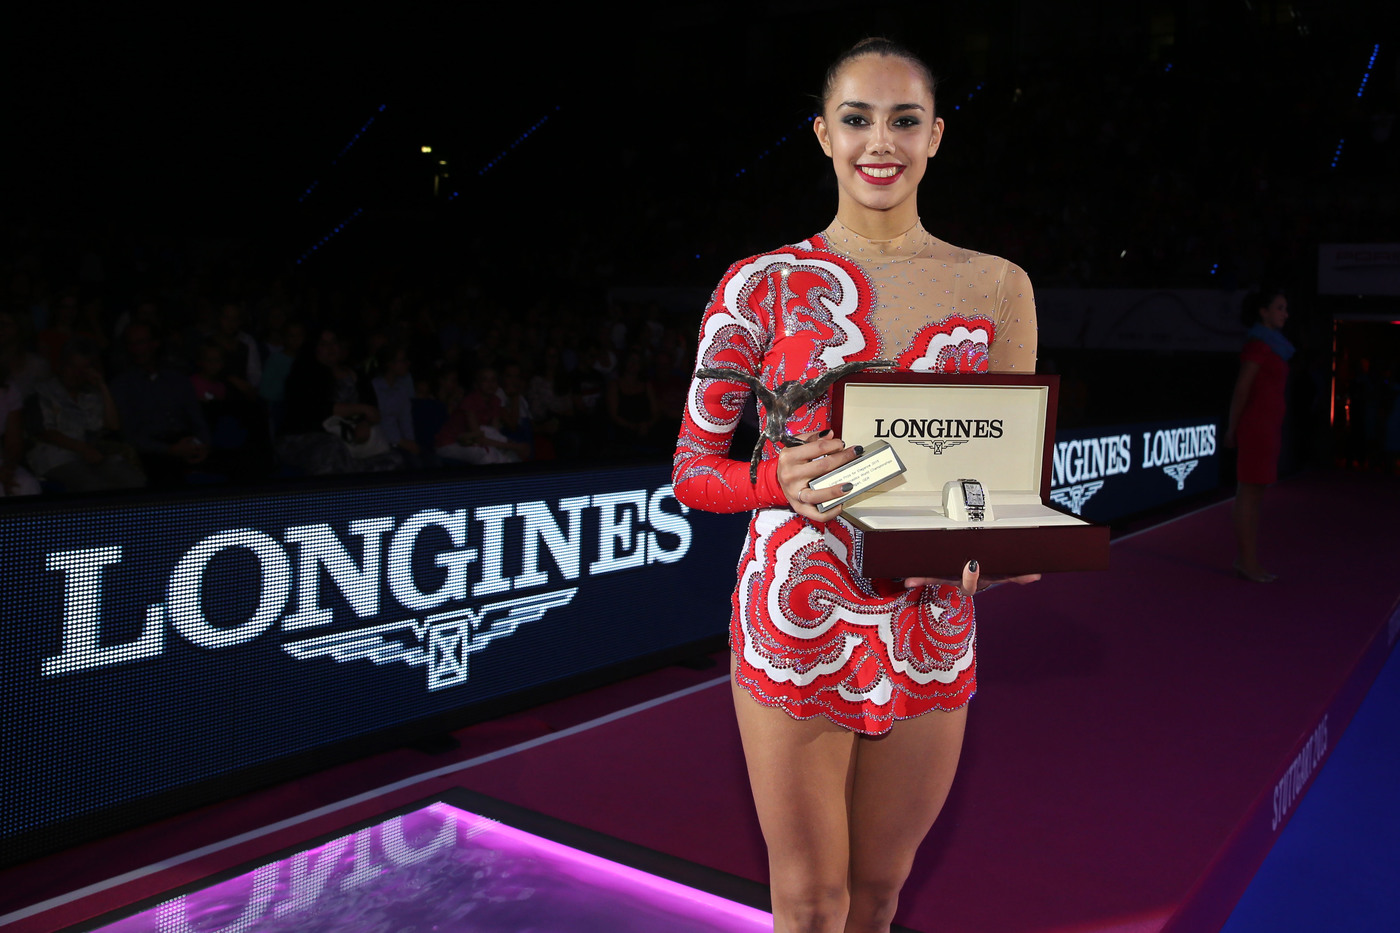 Longines Gymnastics Event: Margarita Mamun awarded with the Longines Prize for Elegance at the 34th Rhythmic Gymnastics World Championships 2015 3